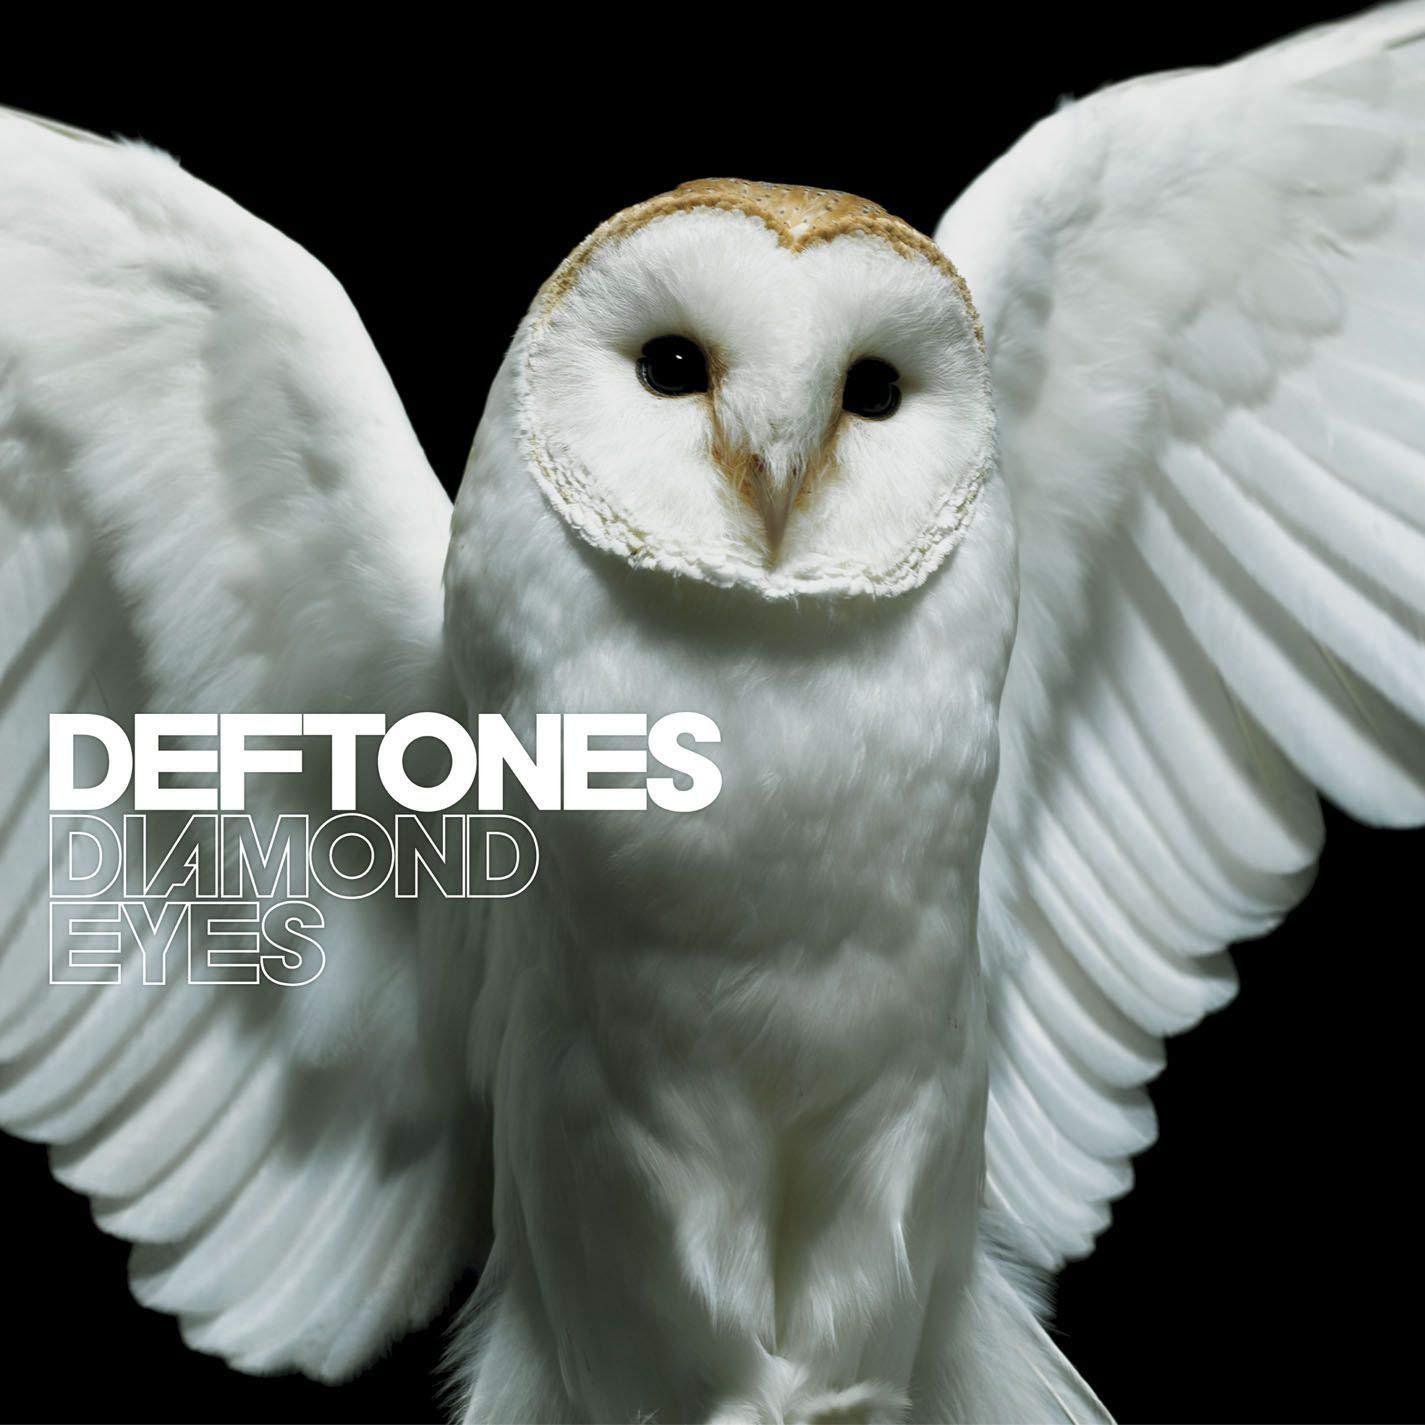 Deftones, Diamond Eyes